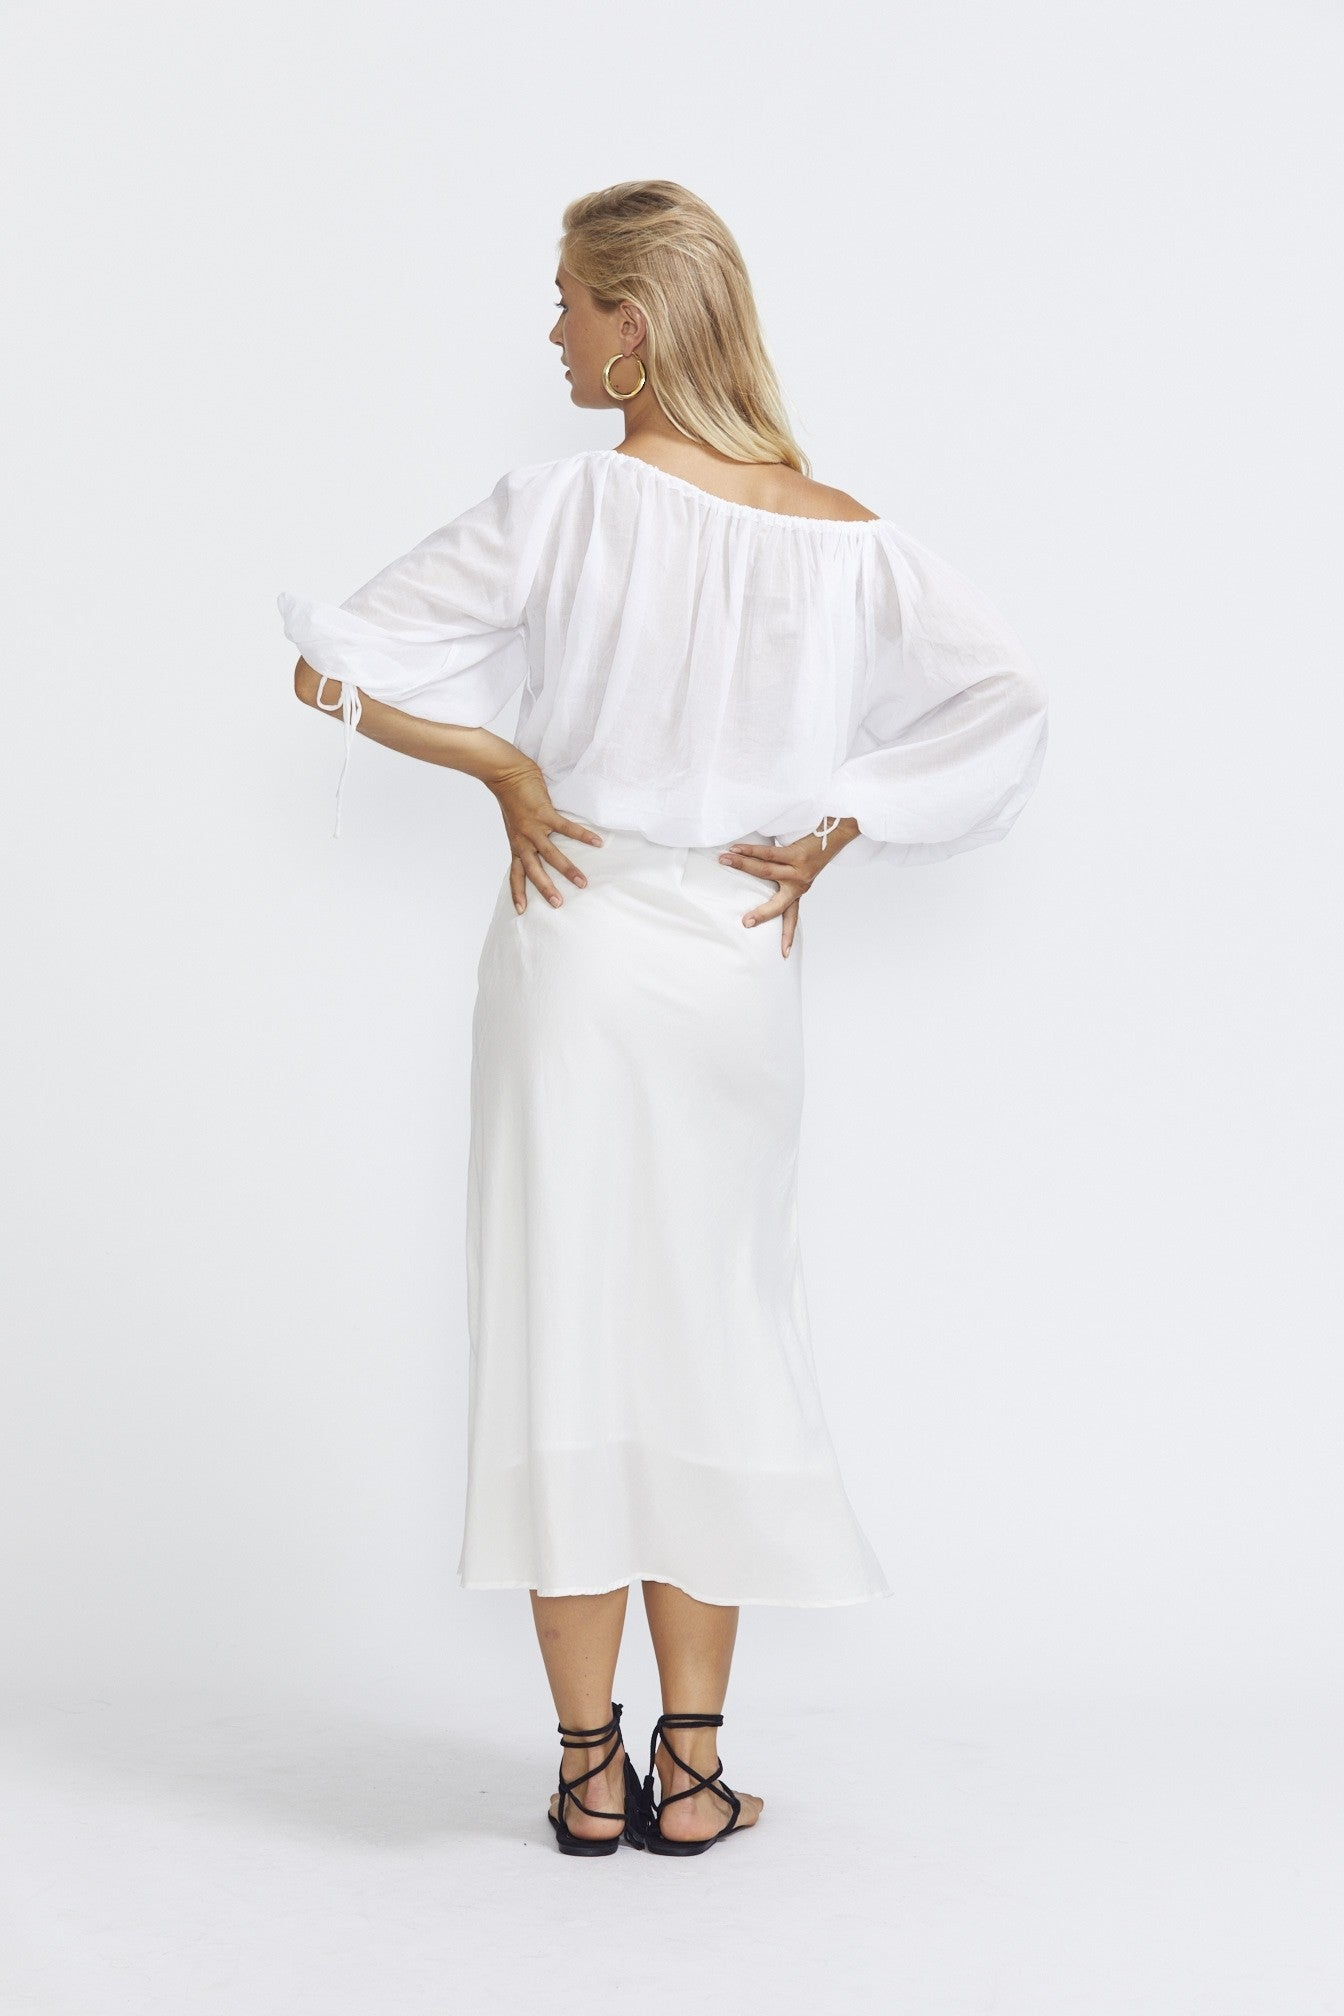 ÉSS THE LABEL LuLu Blouse - White